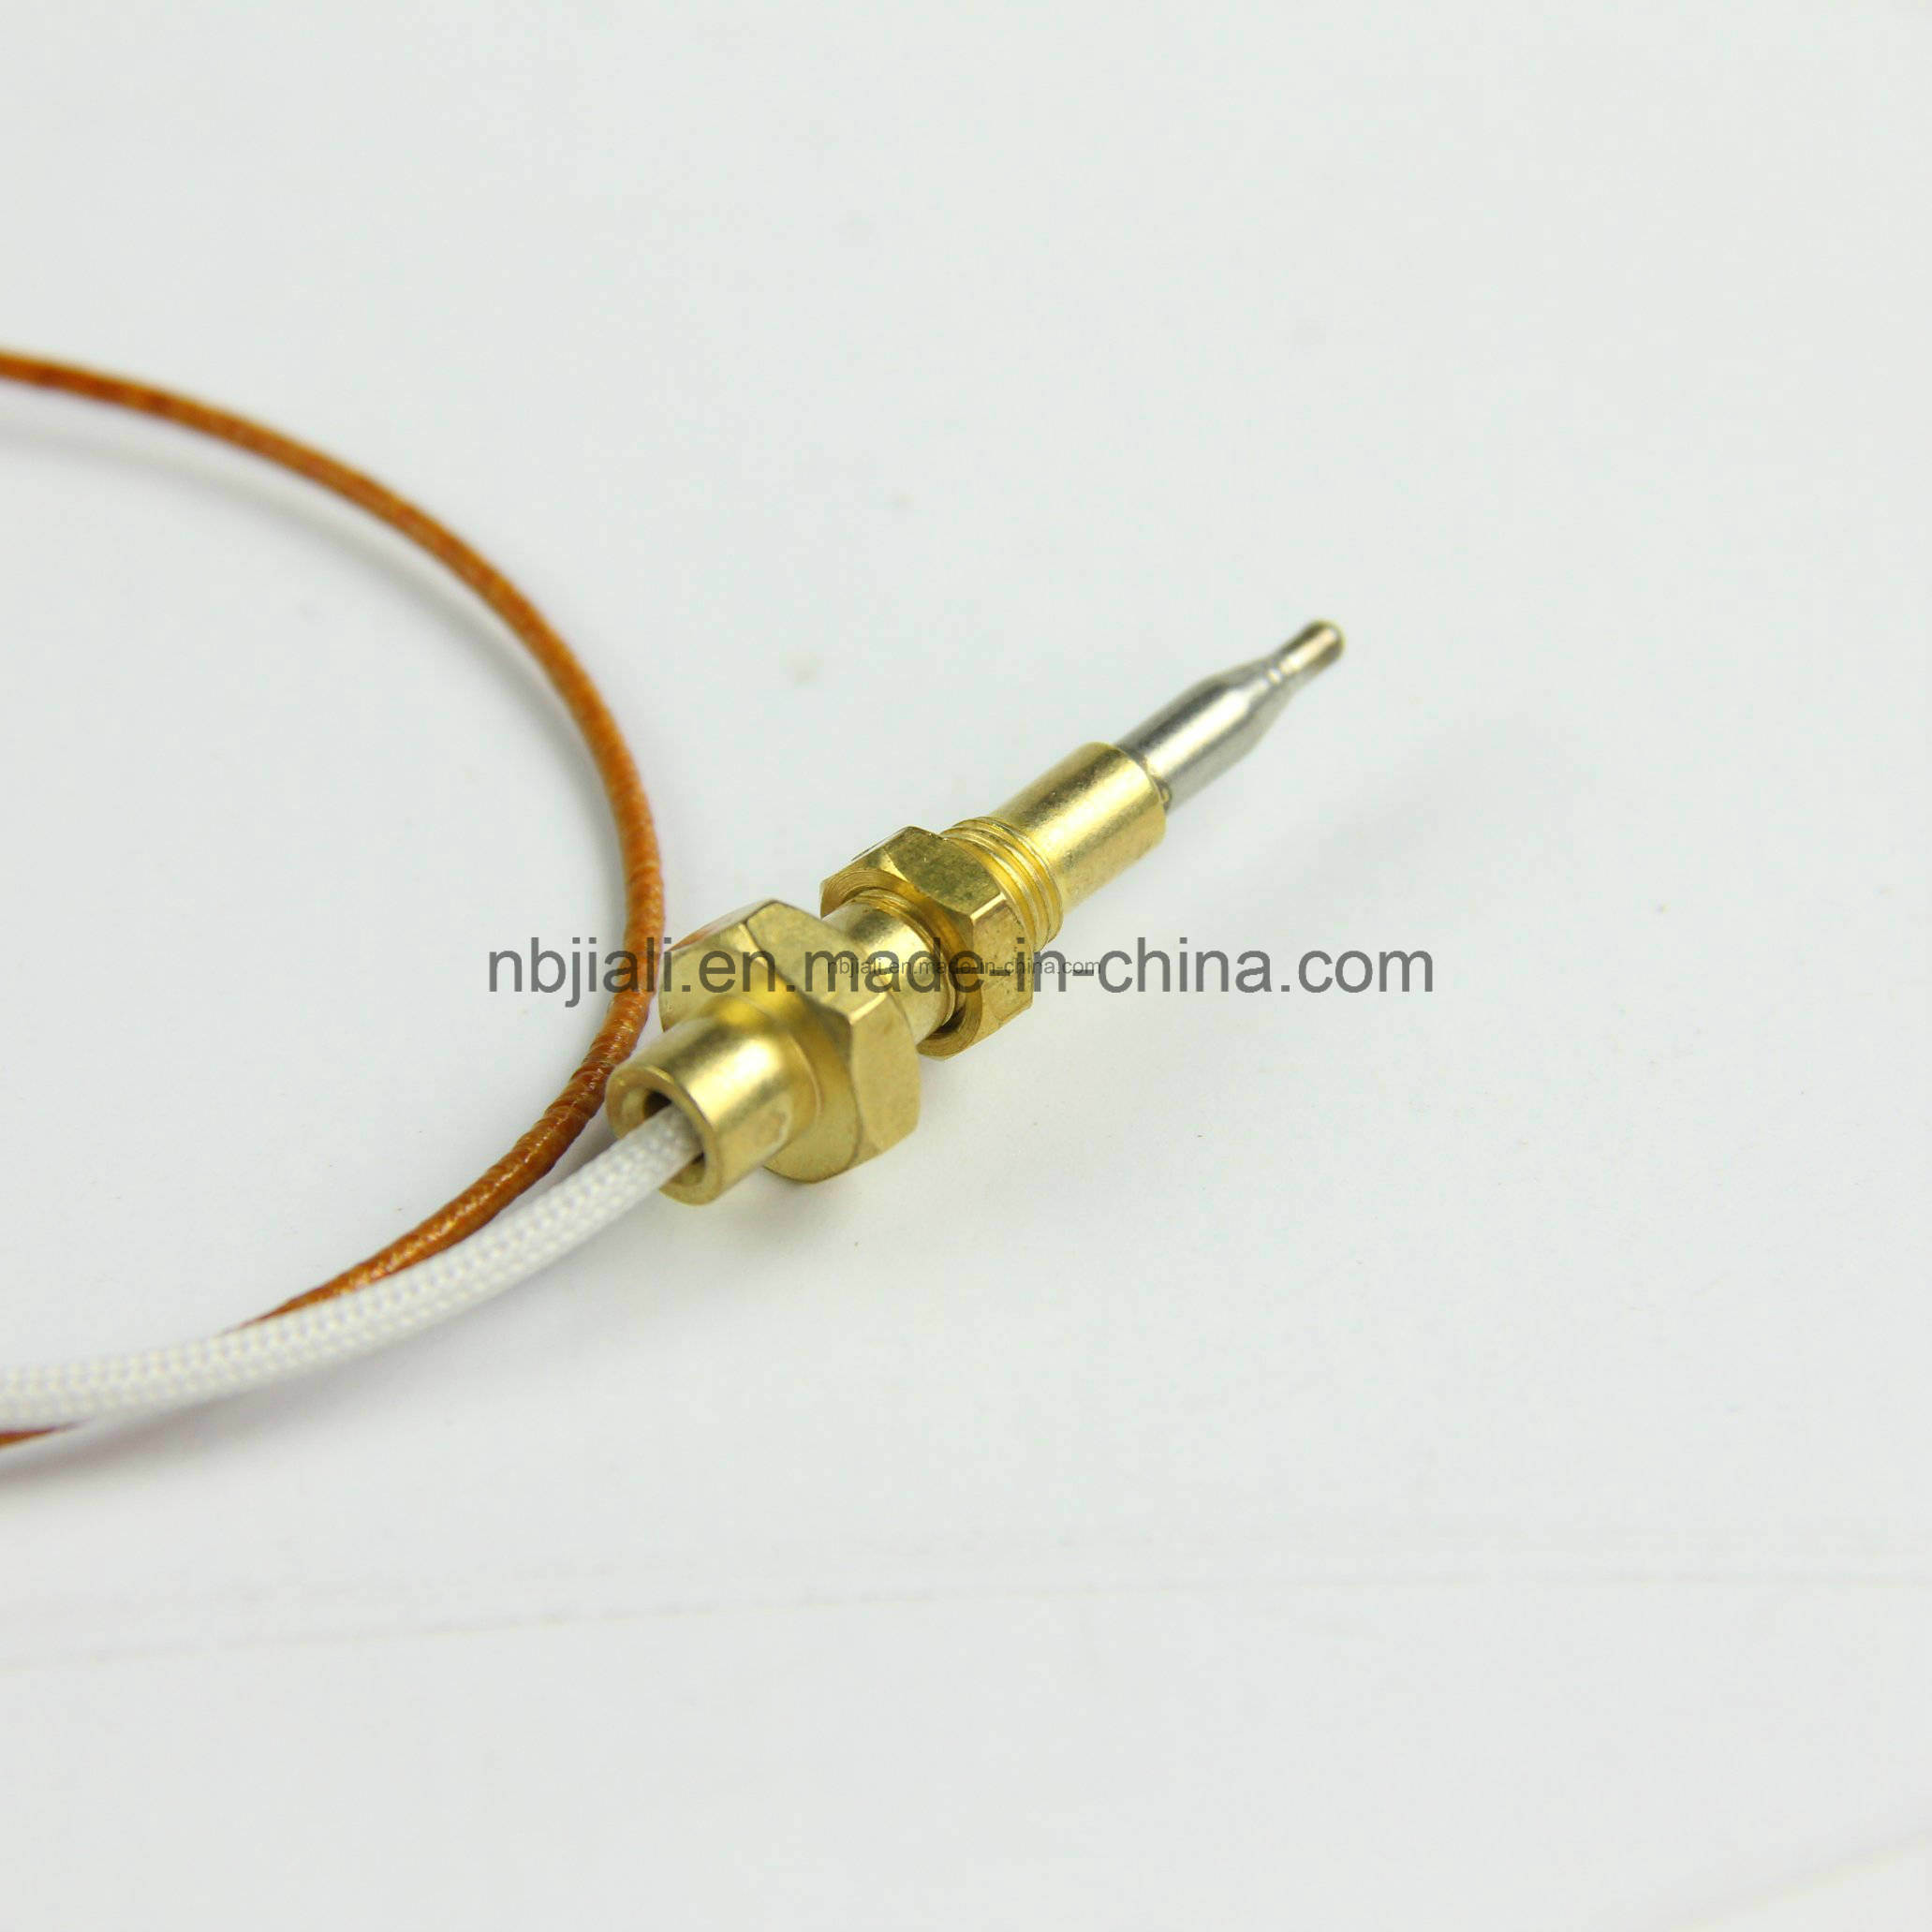 Gas Oven Thermocouple for Kitchen